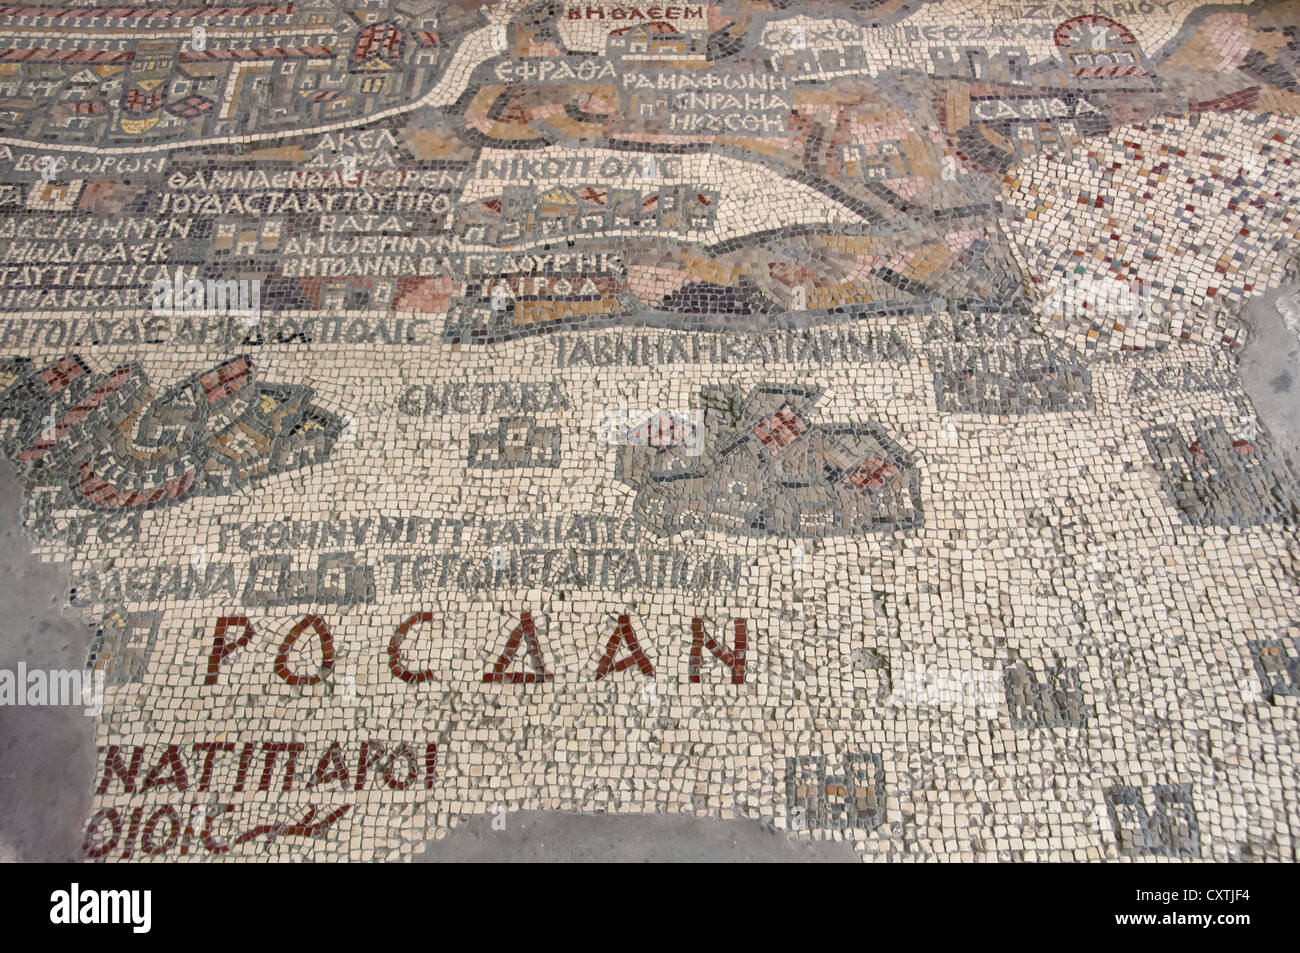 Pocaan - Part of the Madaba Map Mosaic, St George's Greek Orthodox Church, Madaba, Jordan Stock Photo